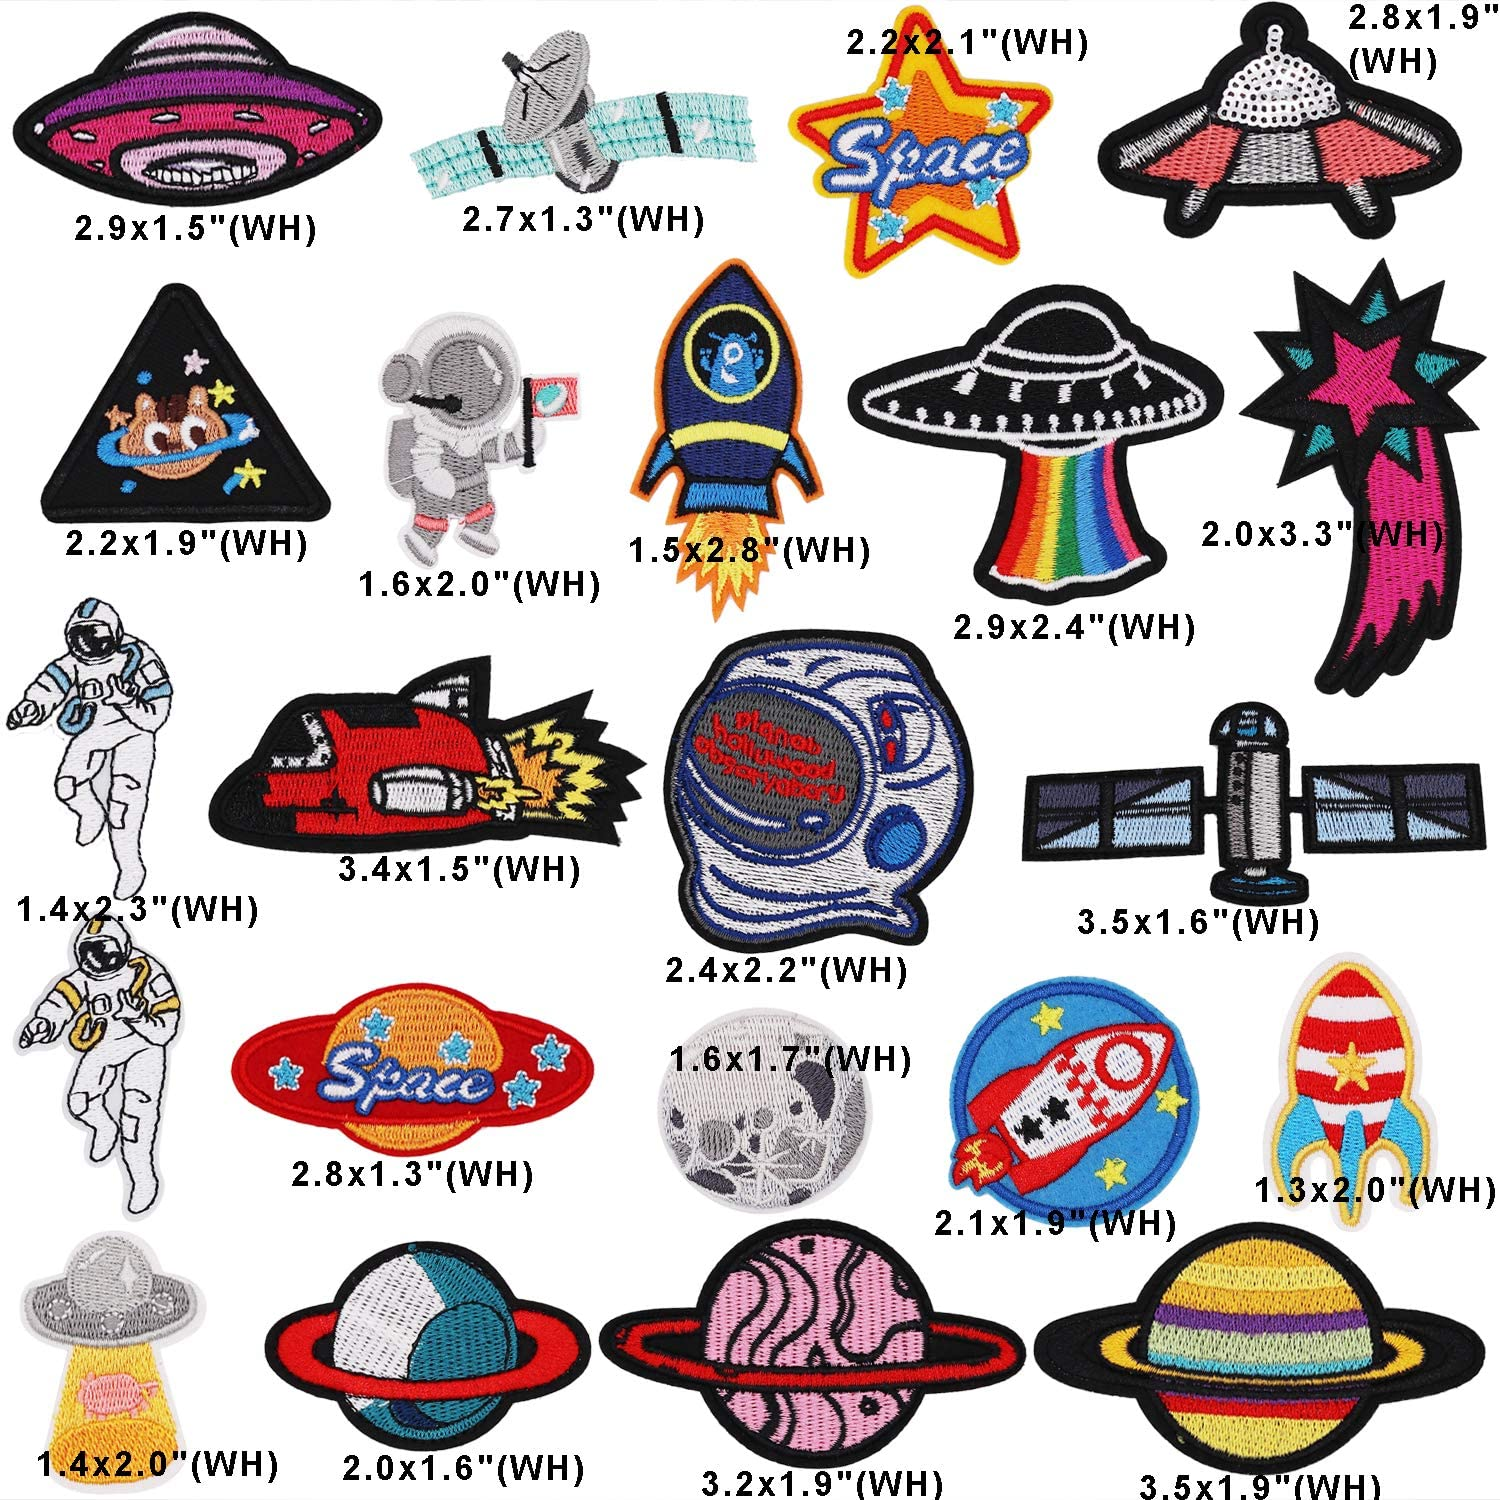 Space 22pcs 22pcs Space Planet Astronaut Iron on Patches Embroidered Motif Applique Decoration Sew On Patches Custom Patches for DIY Jeans Bag Jacket,Kids Clothing Caps Arts Craft Sew Making